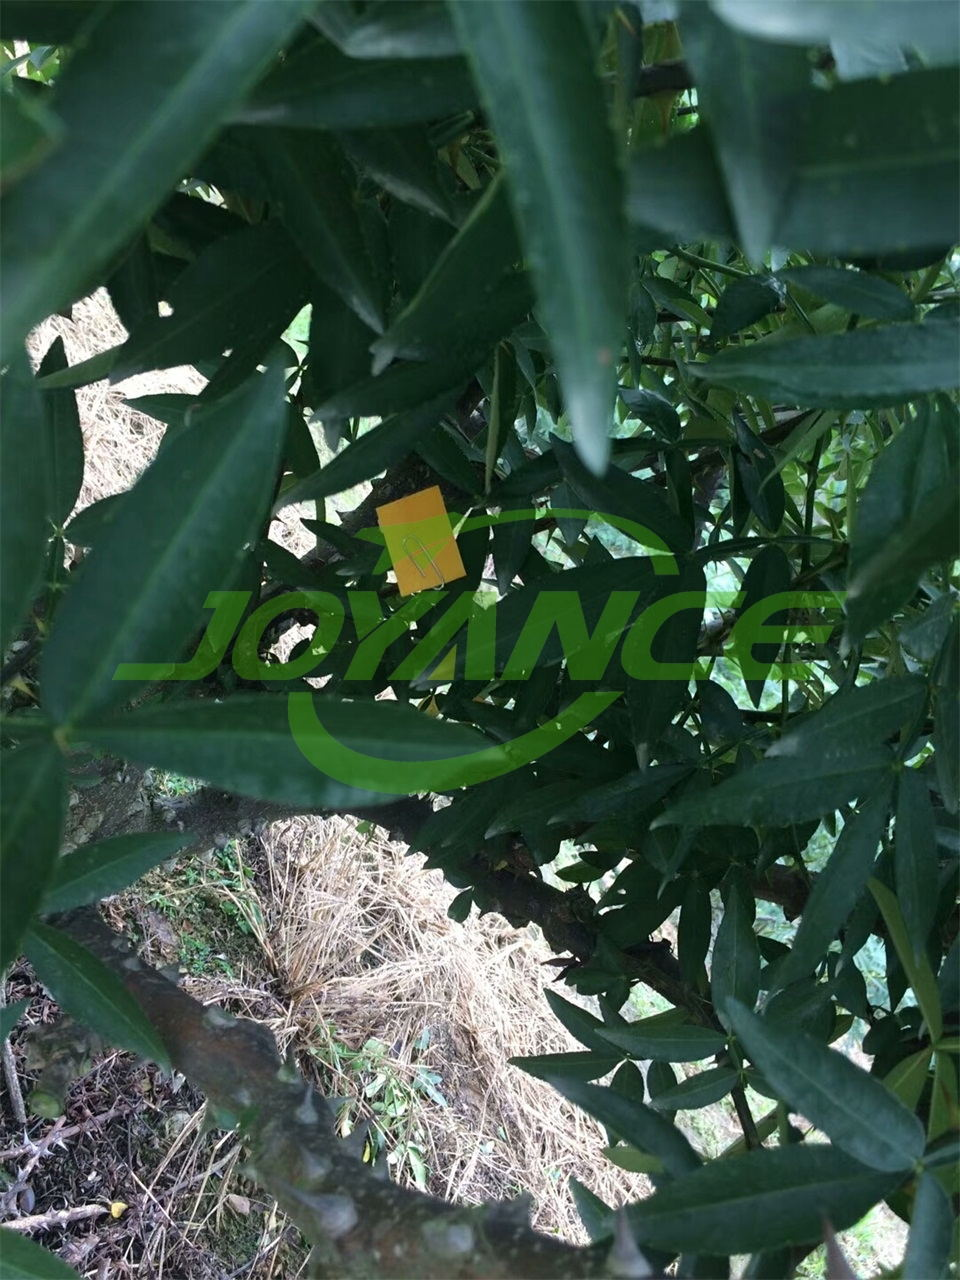 sprayer drone spray fruit trees